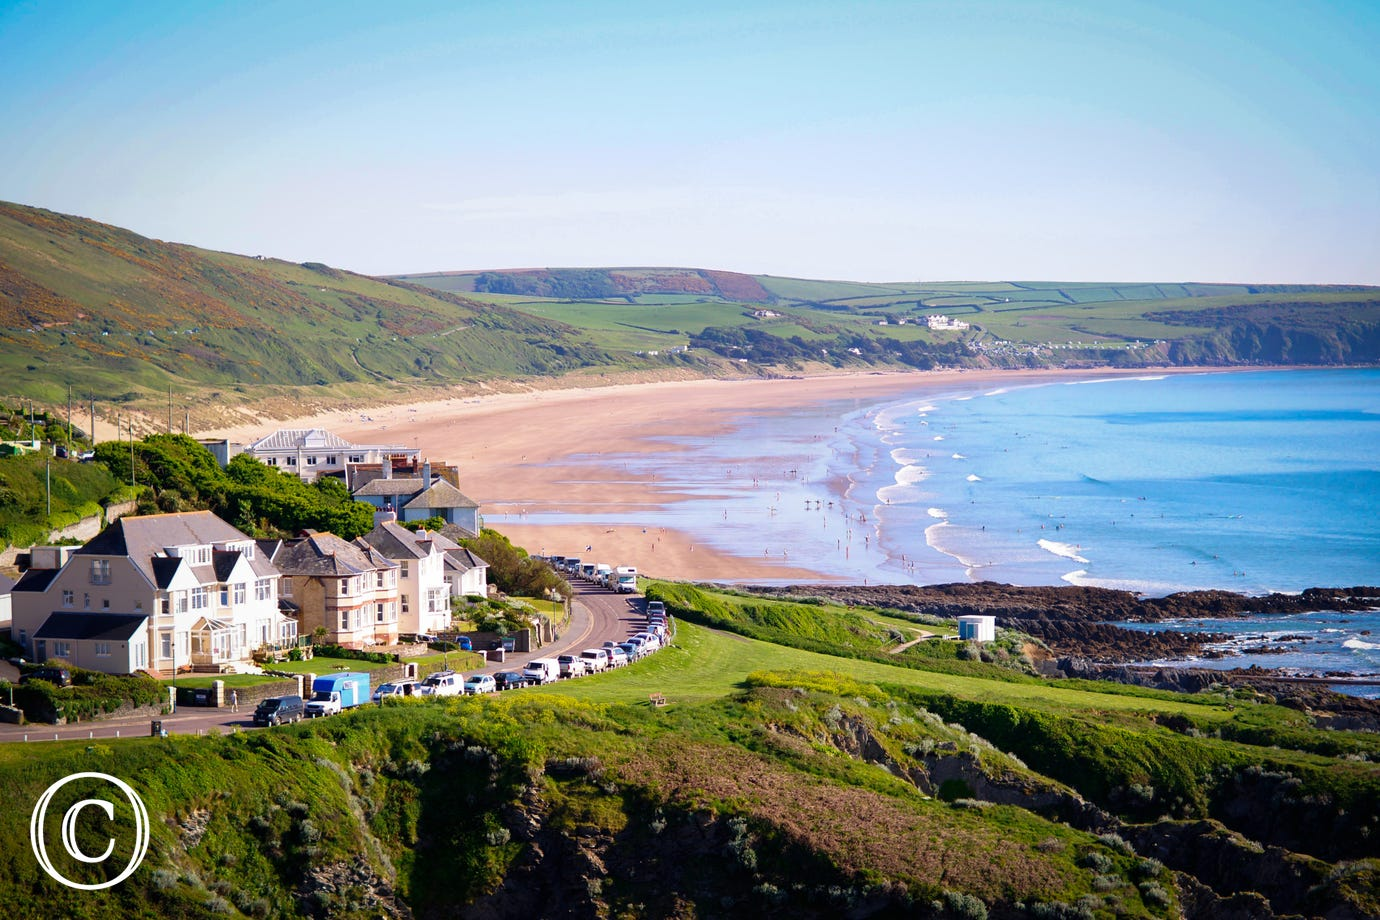 Woolacombe beach is just a short walk away!